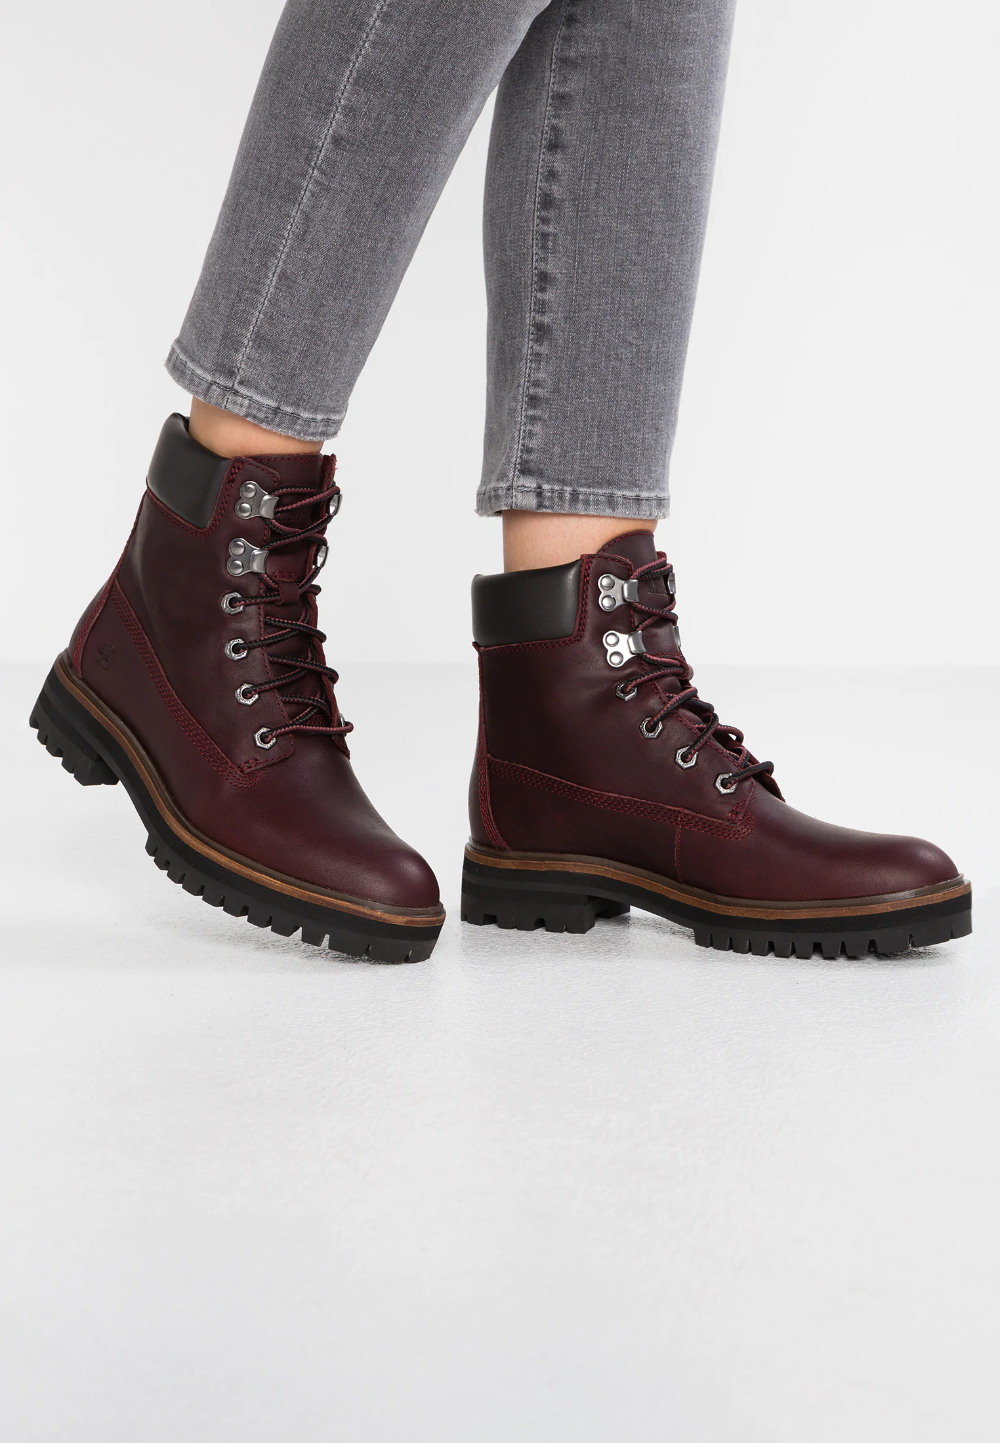 Elocuente diferencia Recuperar  Timberland LONDON SQUARE 6IN BOOT - Bottines à lacets - bordeaux - ZALANDO. FR | Boots, Timberland, Light boots